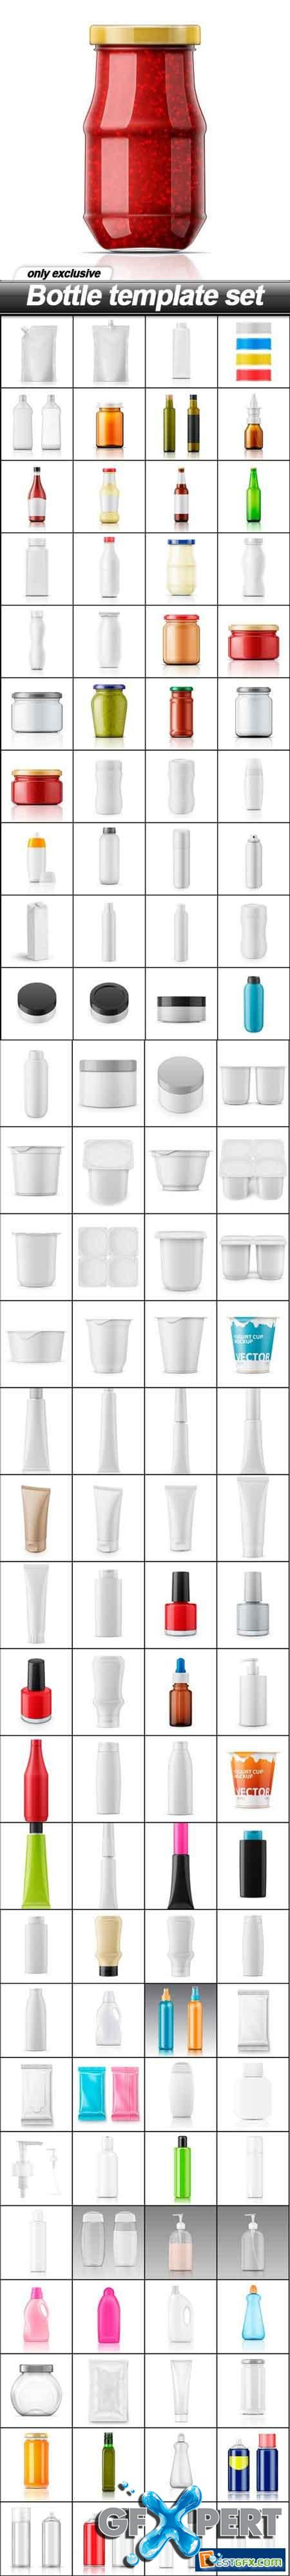 Bottle template set - 117 EPS